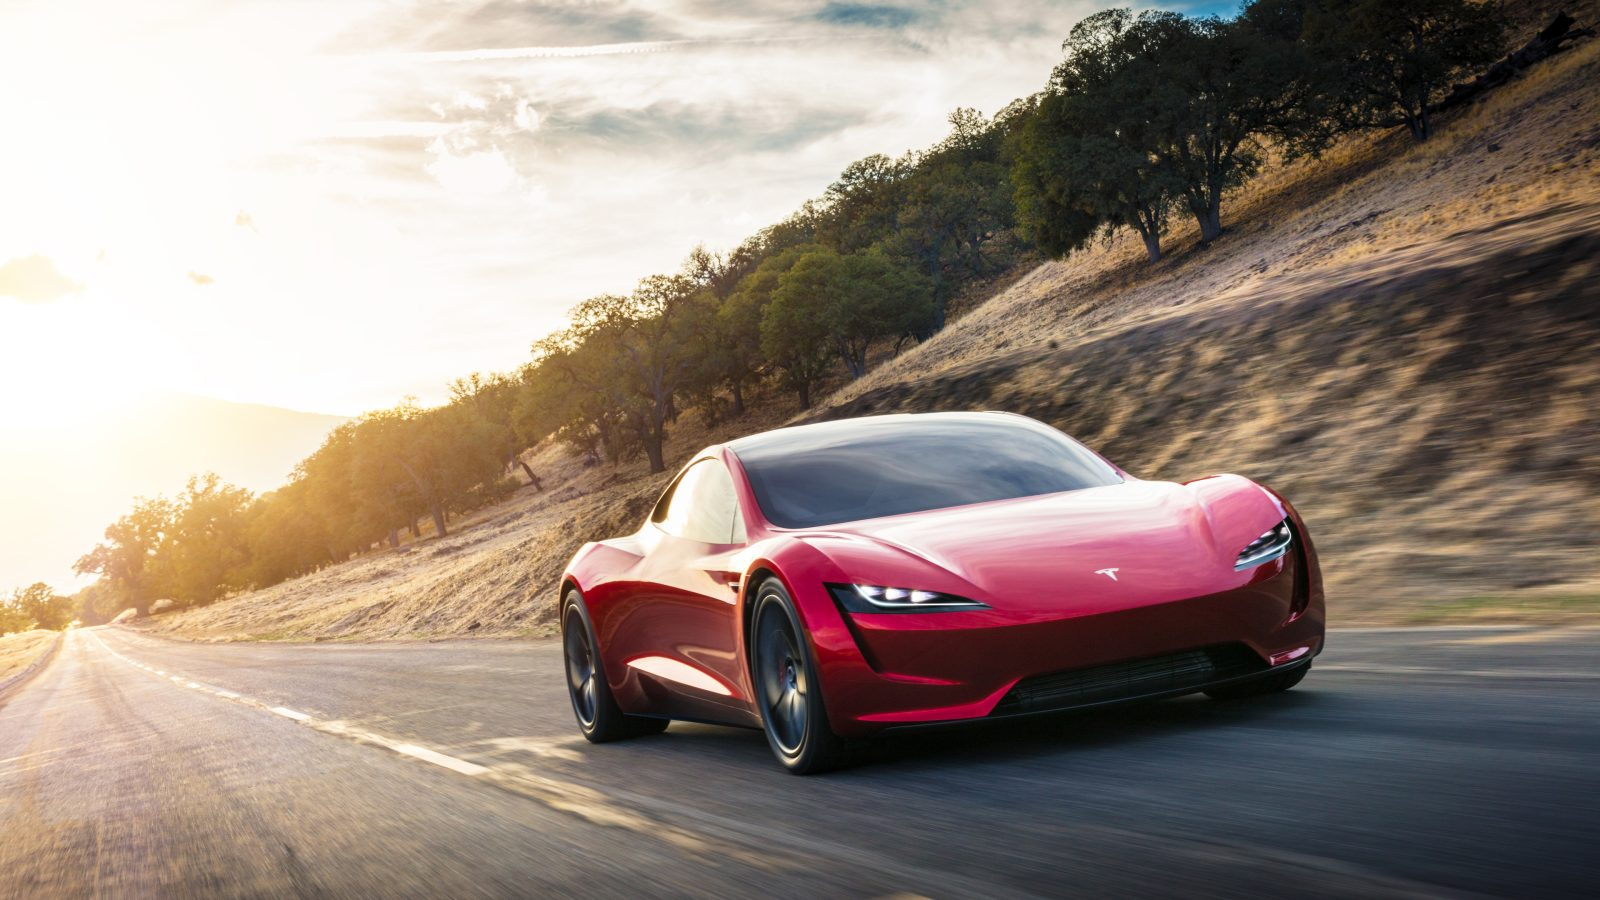 tesla s next gen roadster a speculative technical look at the car that will smack down gasoline powered cars [ 1600 x 900 Pixel ]